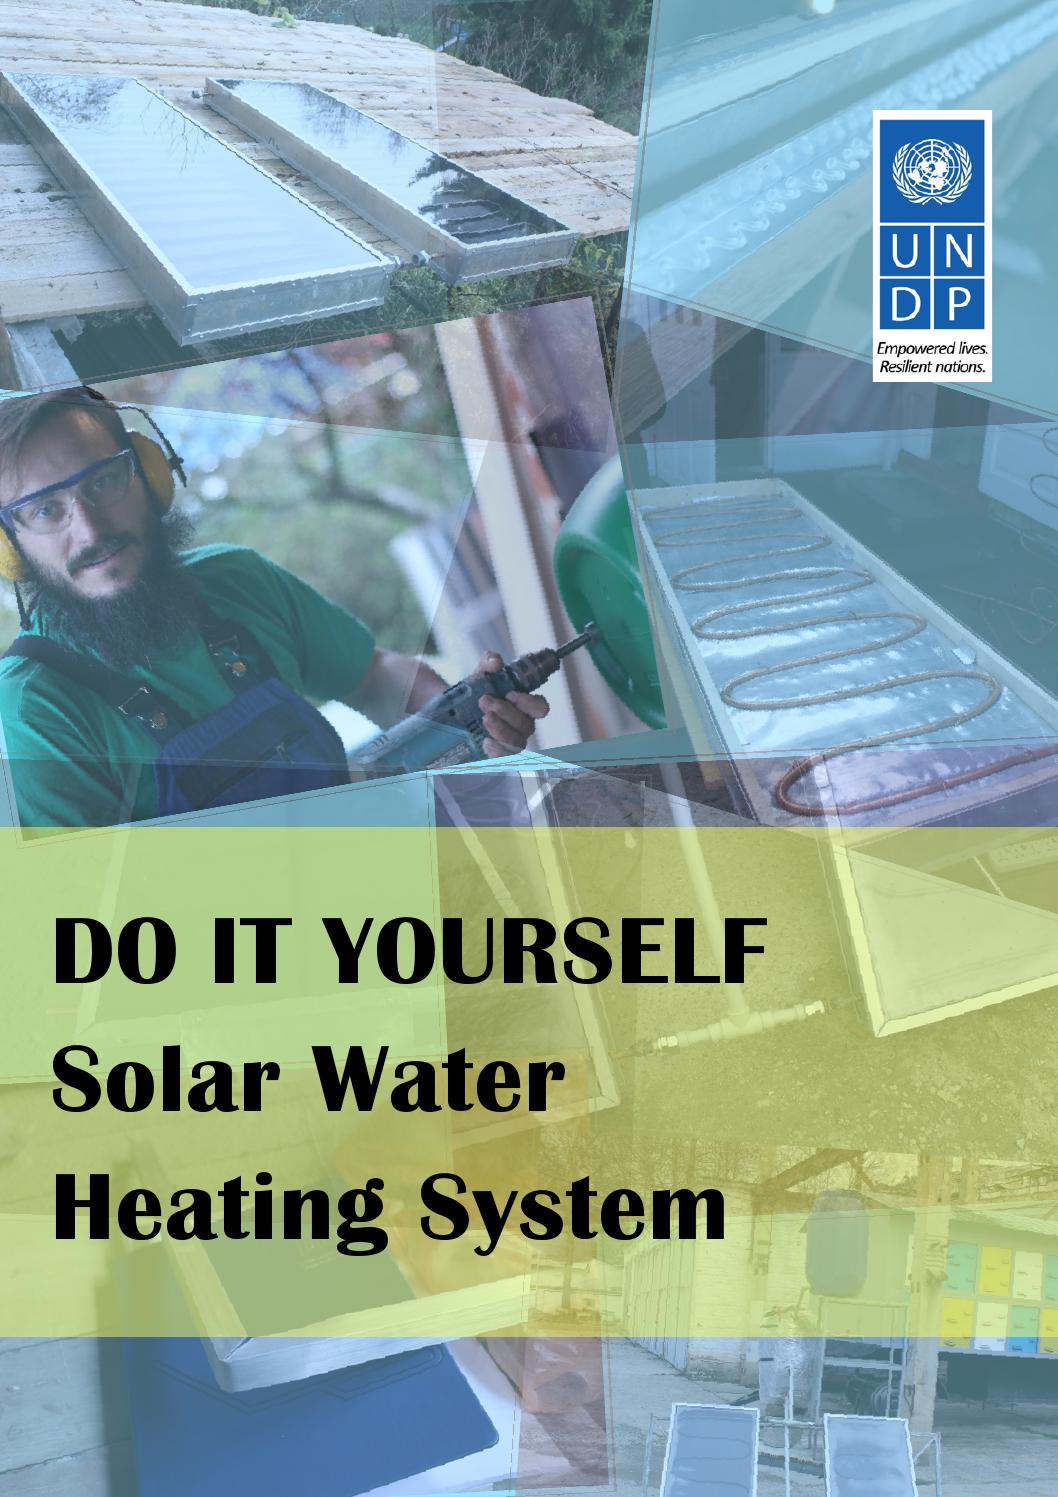 DO IT YOURSELF Solar Water Heating System by United Nations ...